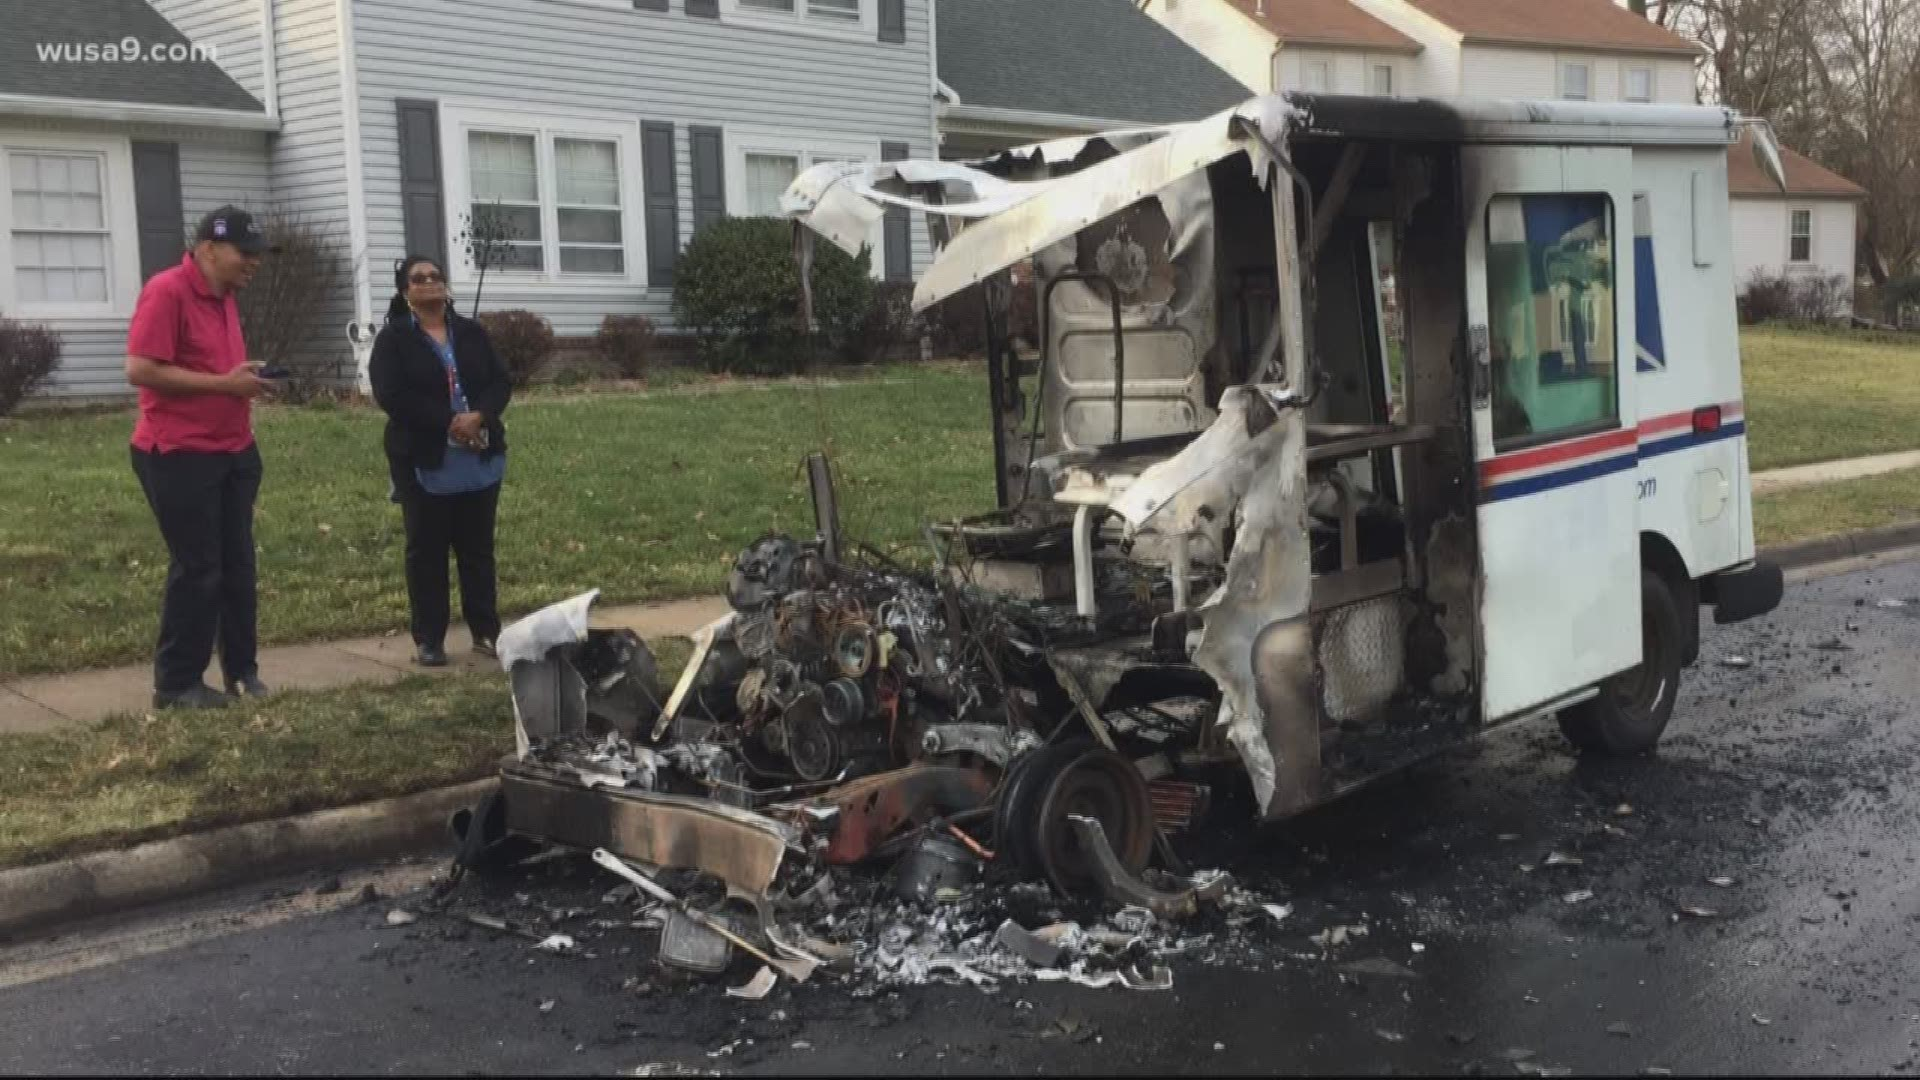 Usps Truck Catches Fire While Delivering Mail In Virginia Wusa9 Com